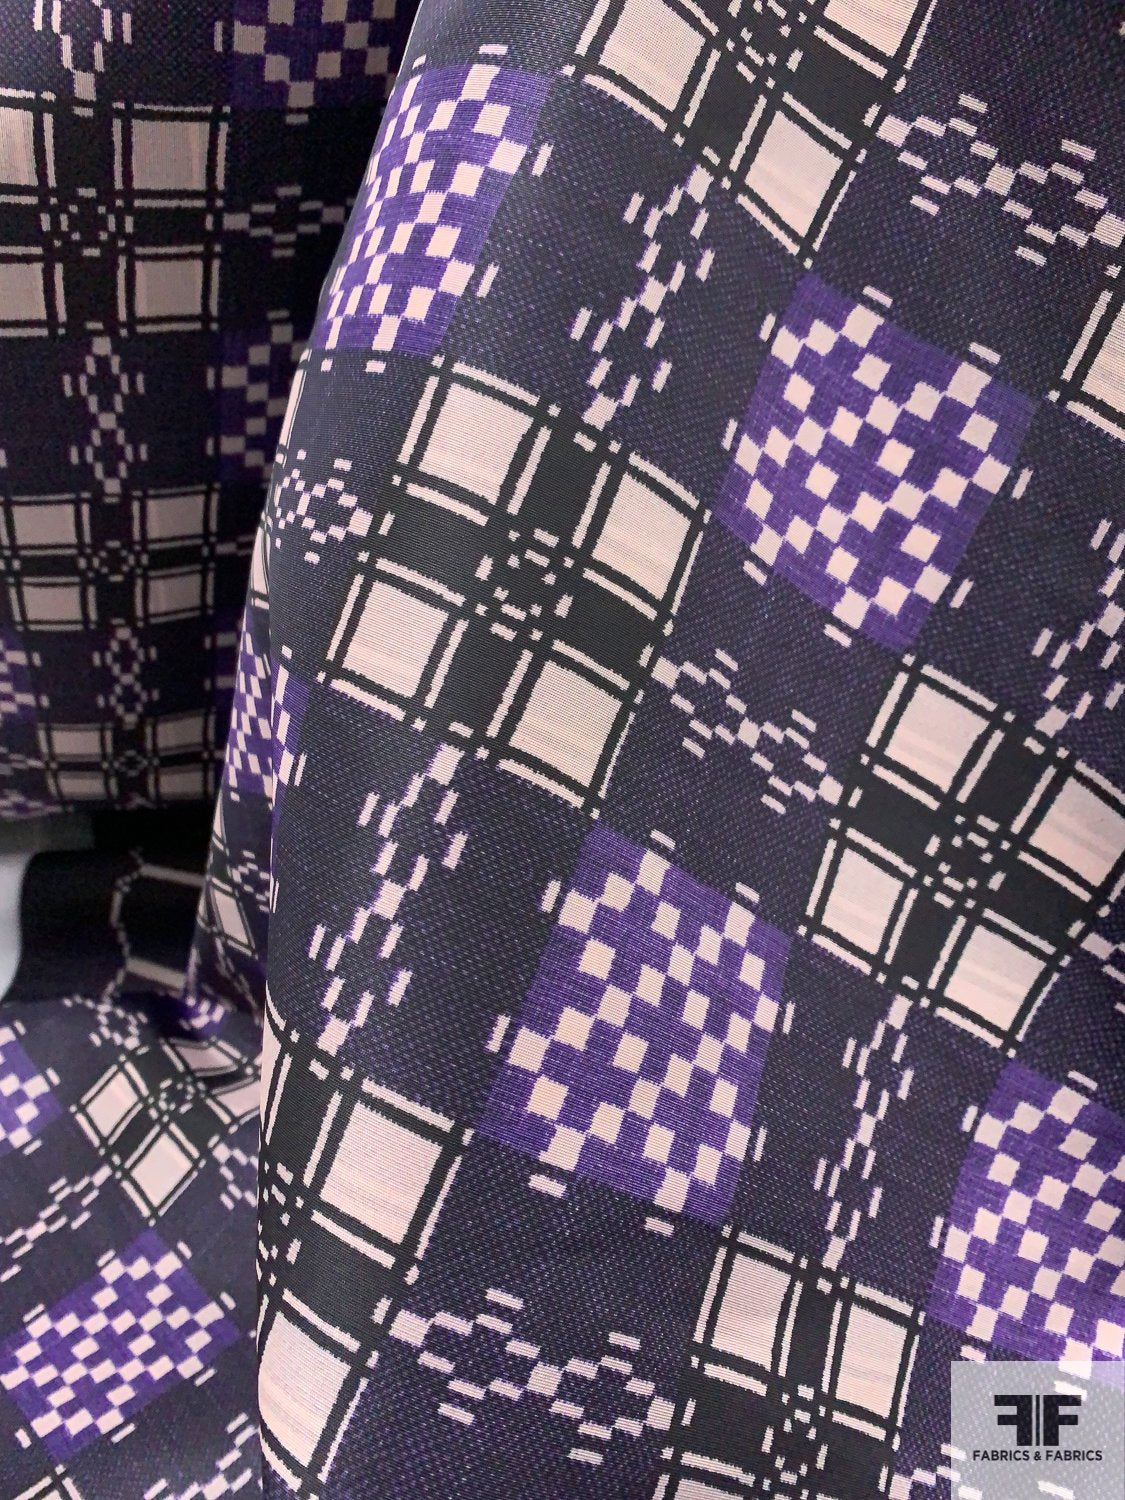 Ethnic Geometric Checkerboard Printed Poly Nylon Faille - Purple / Eggplant / Black